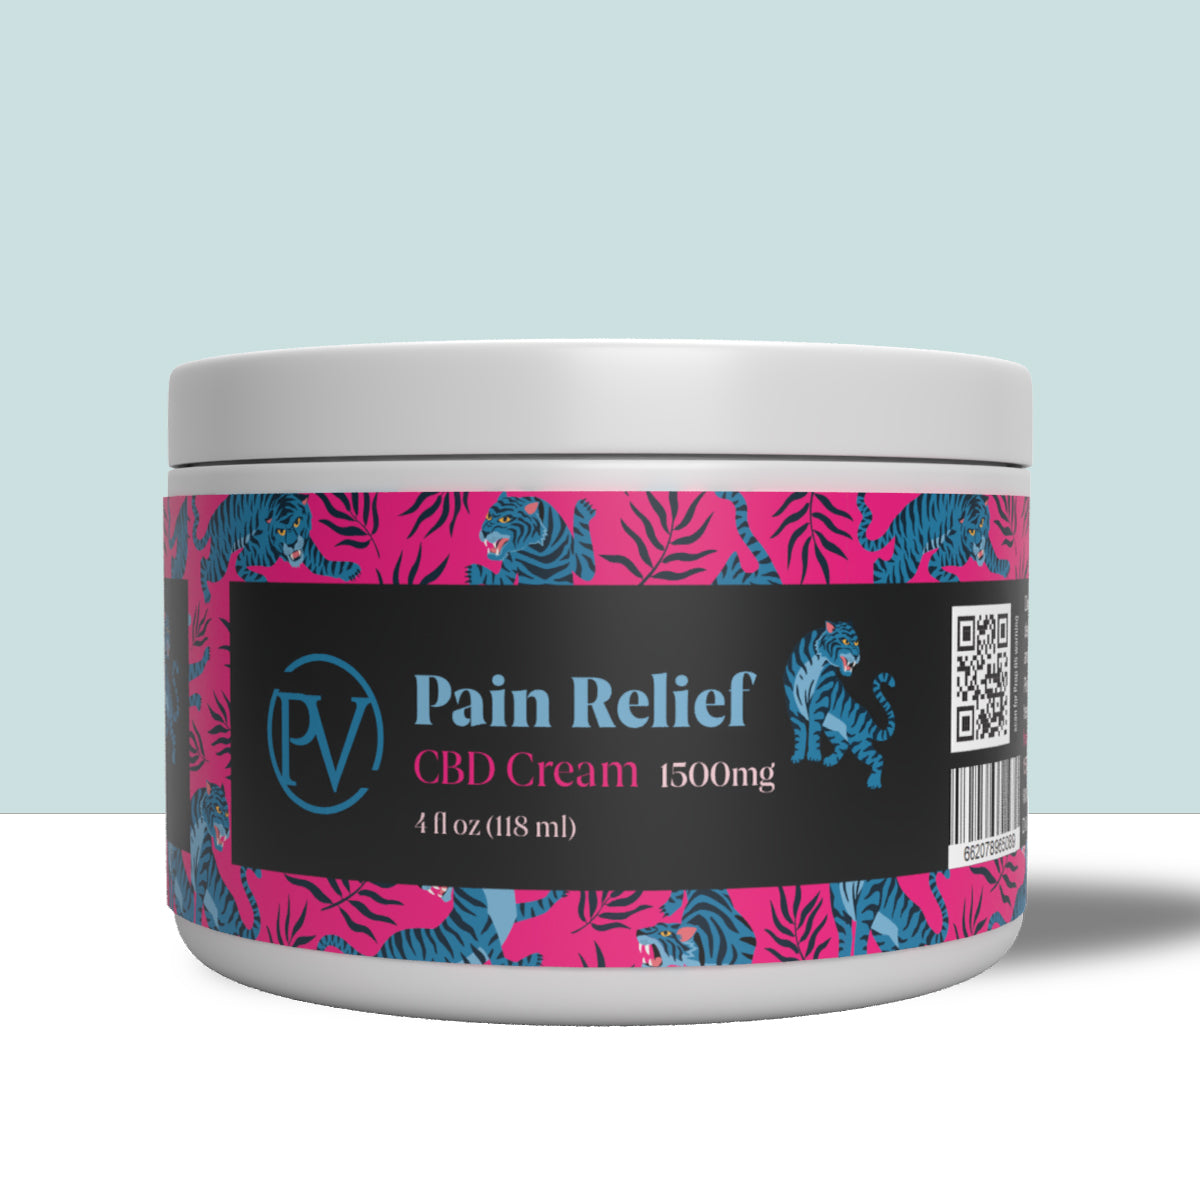 Pain Relief Cream 1500mg